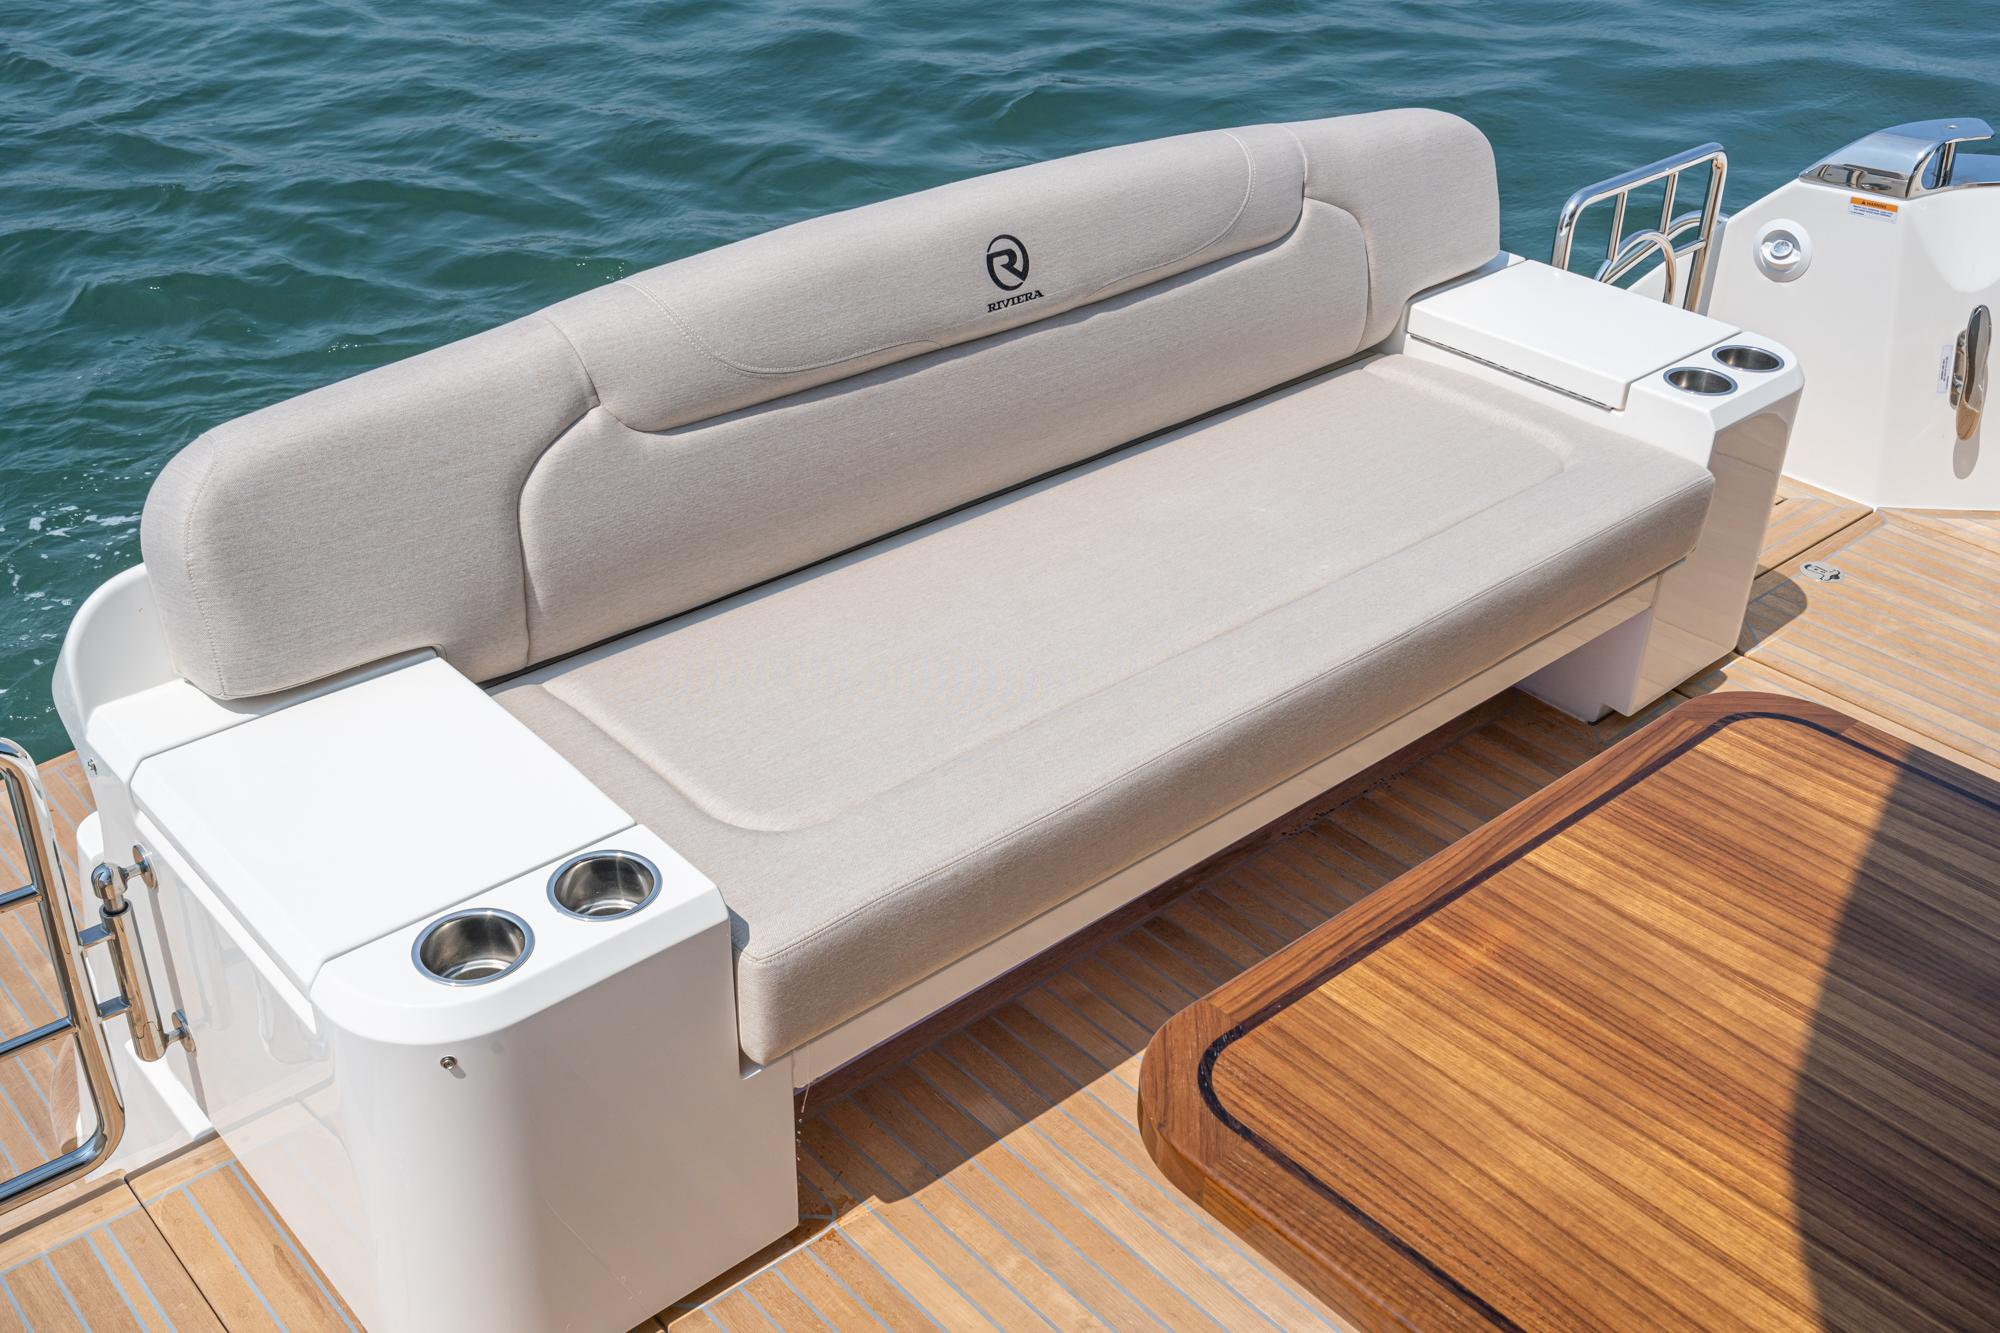 2022 Riviera 5400 Sport Yacht #R112 inventory image at Sun Country Coastal in Newport Beach